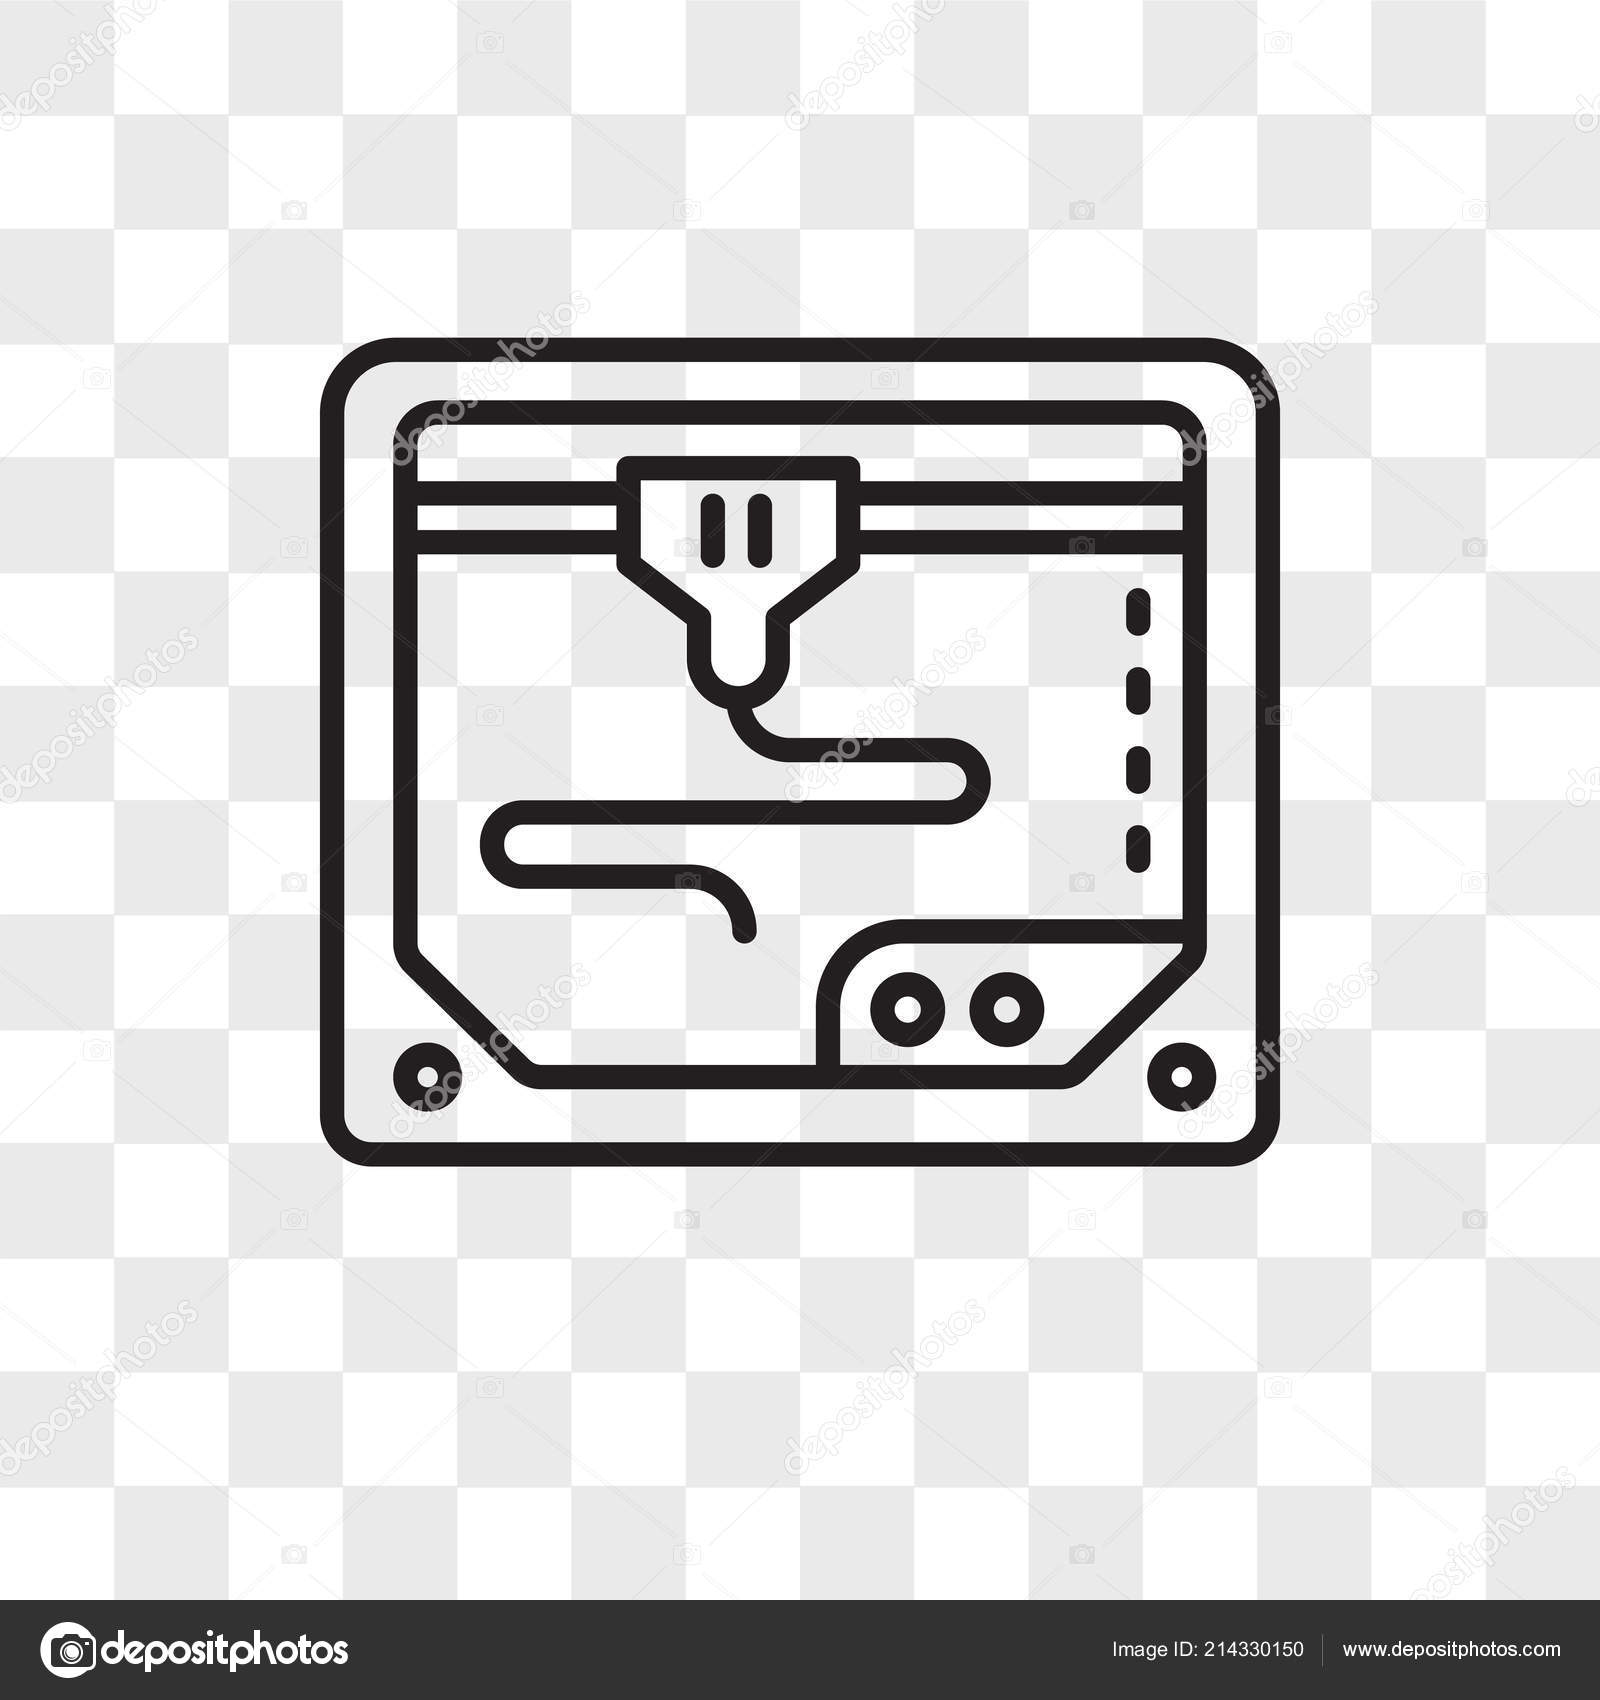 3d printer vector icon isolated on transparent background 3d printer logo design stock vector c provectorstock 214330150 https depositphotos com 214330150 stock illustration 3d printer vector icon isolated html